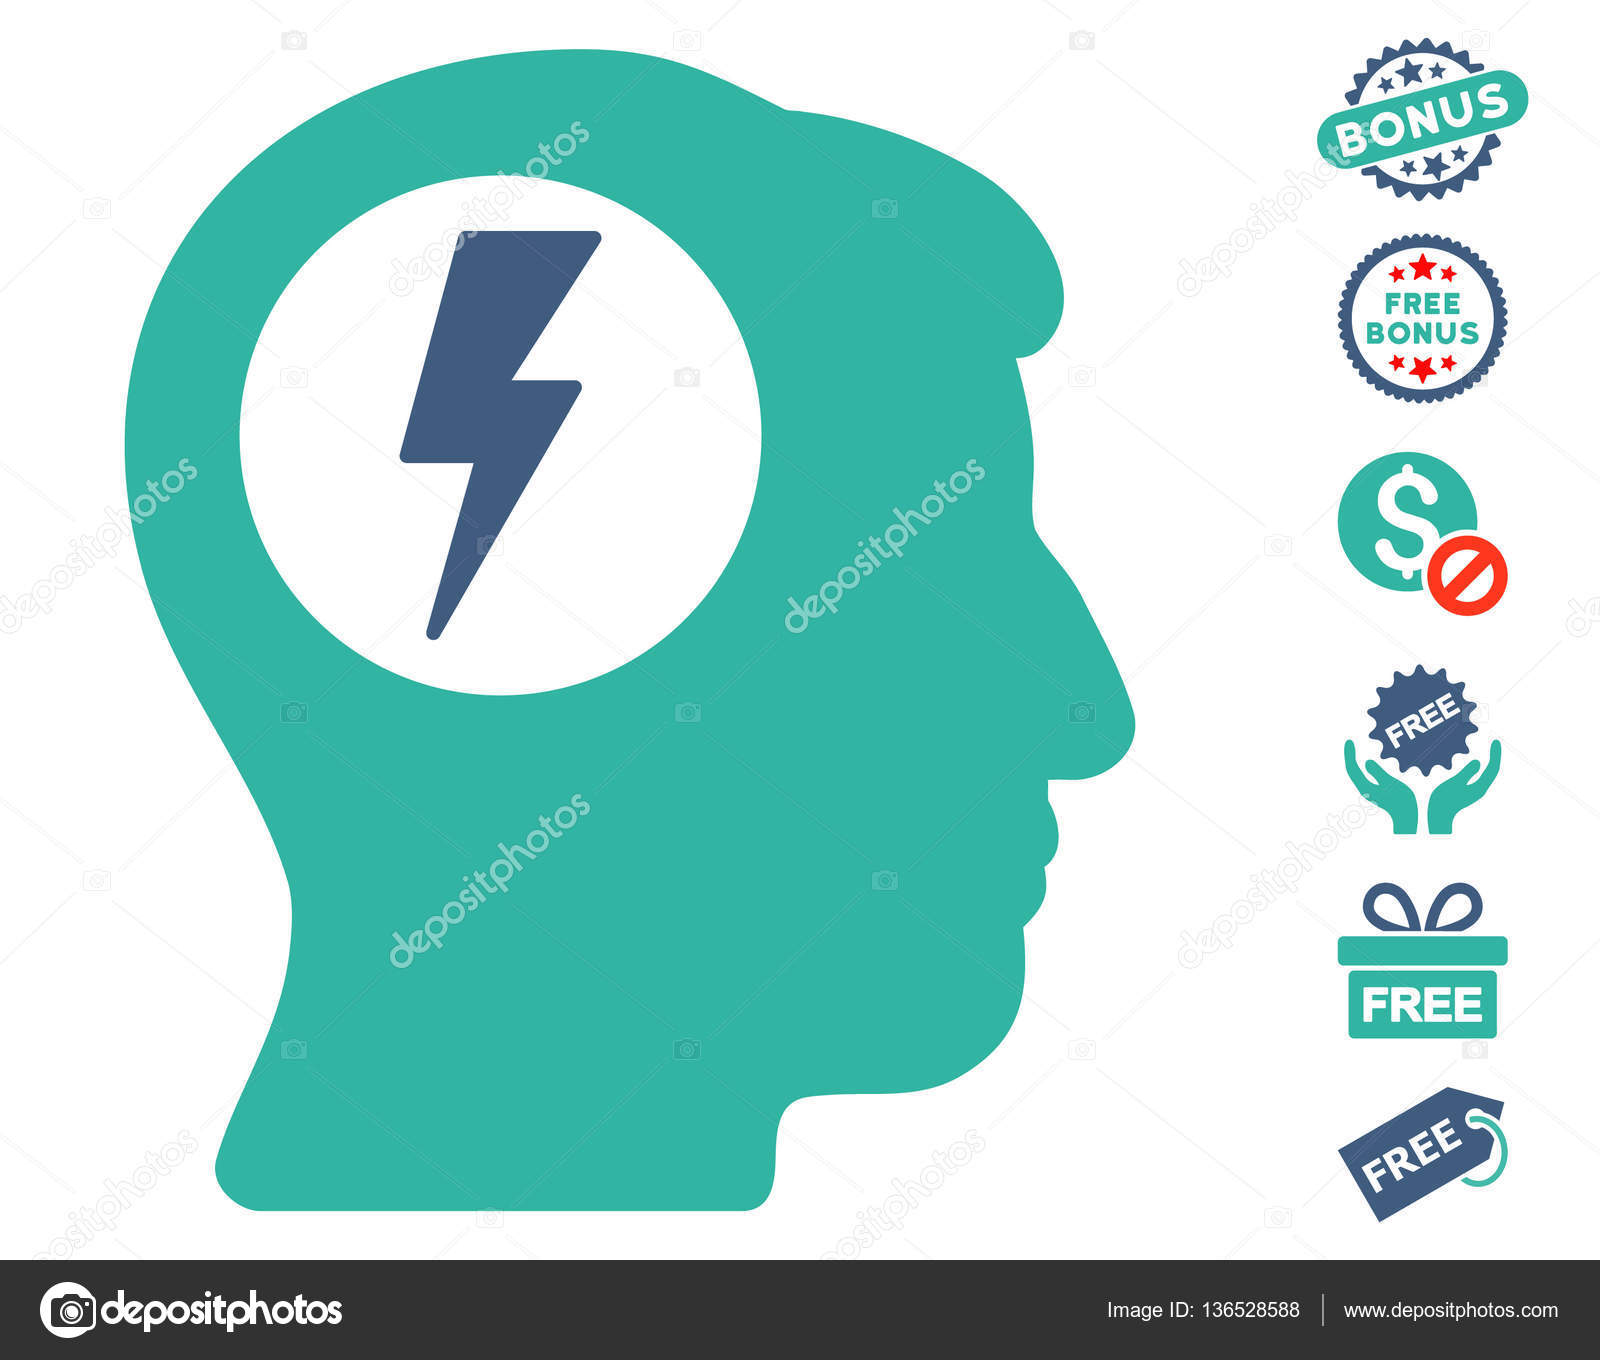 Brain electric shock icon with free bonus stock vector ahasoft brain electric shock icon with free bonus clip art vector illustration style is flat iconic symbols cobalt and cyan colors white background biocorpaavc Image collections